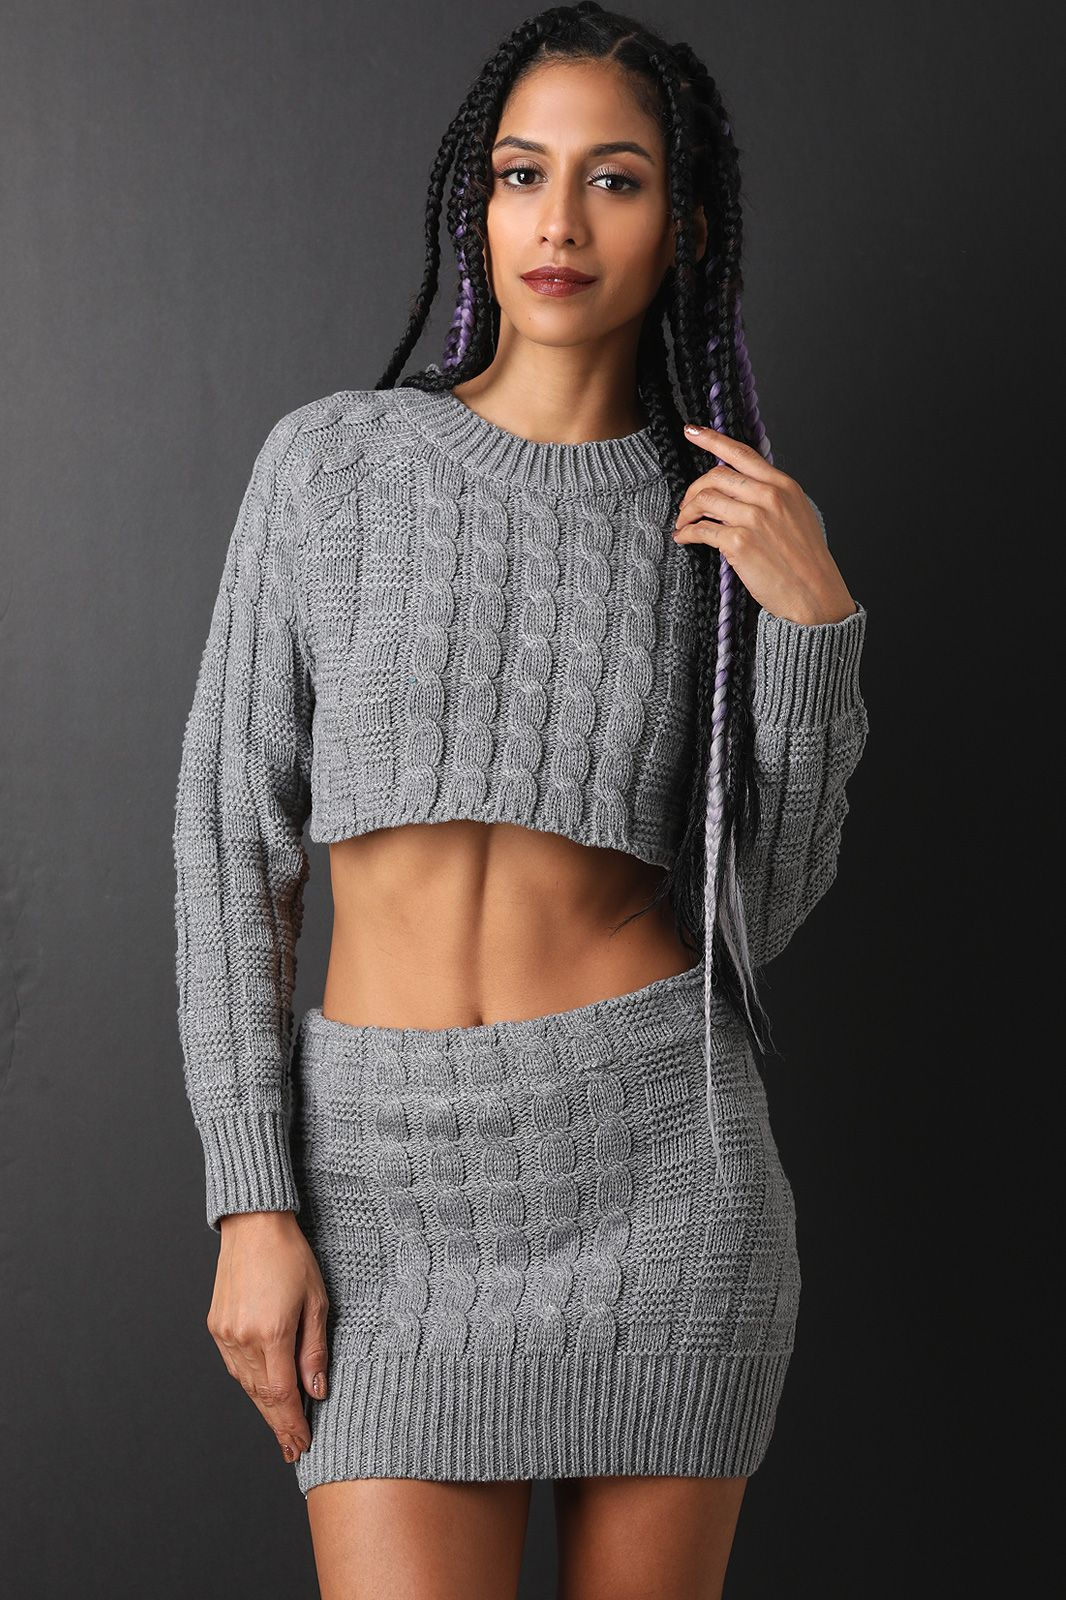 fda7dd1faeb Two-Piece Square Cable Knit Crop Sweater with Mini Skirt Set